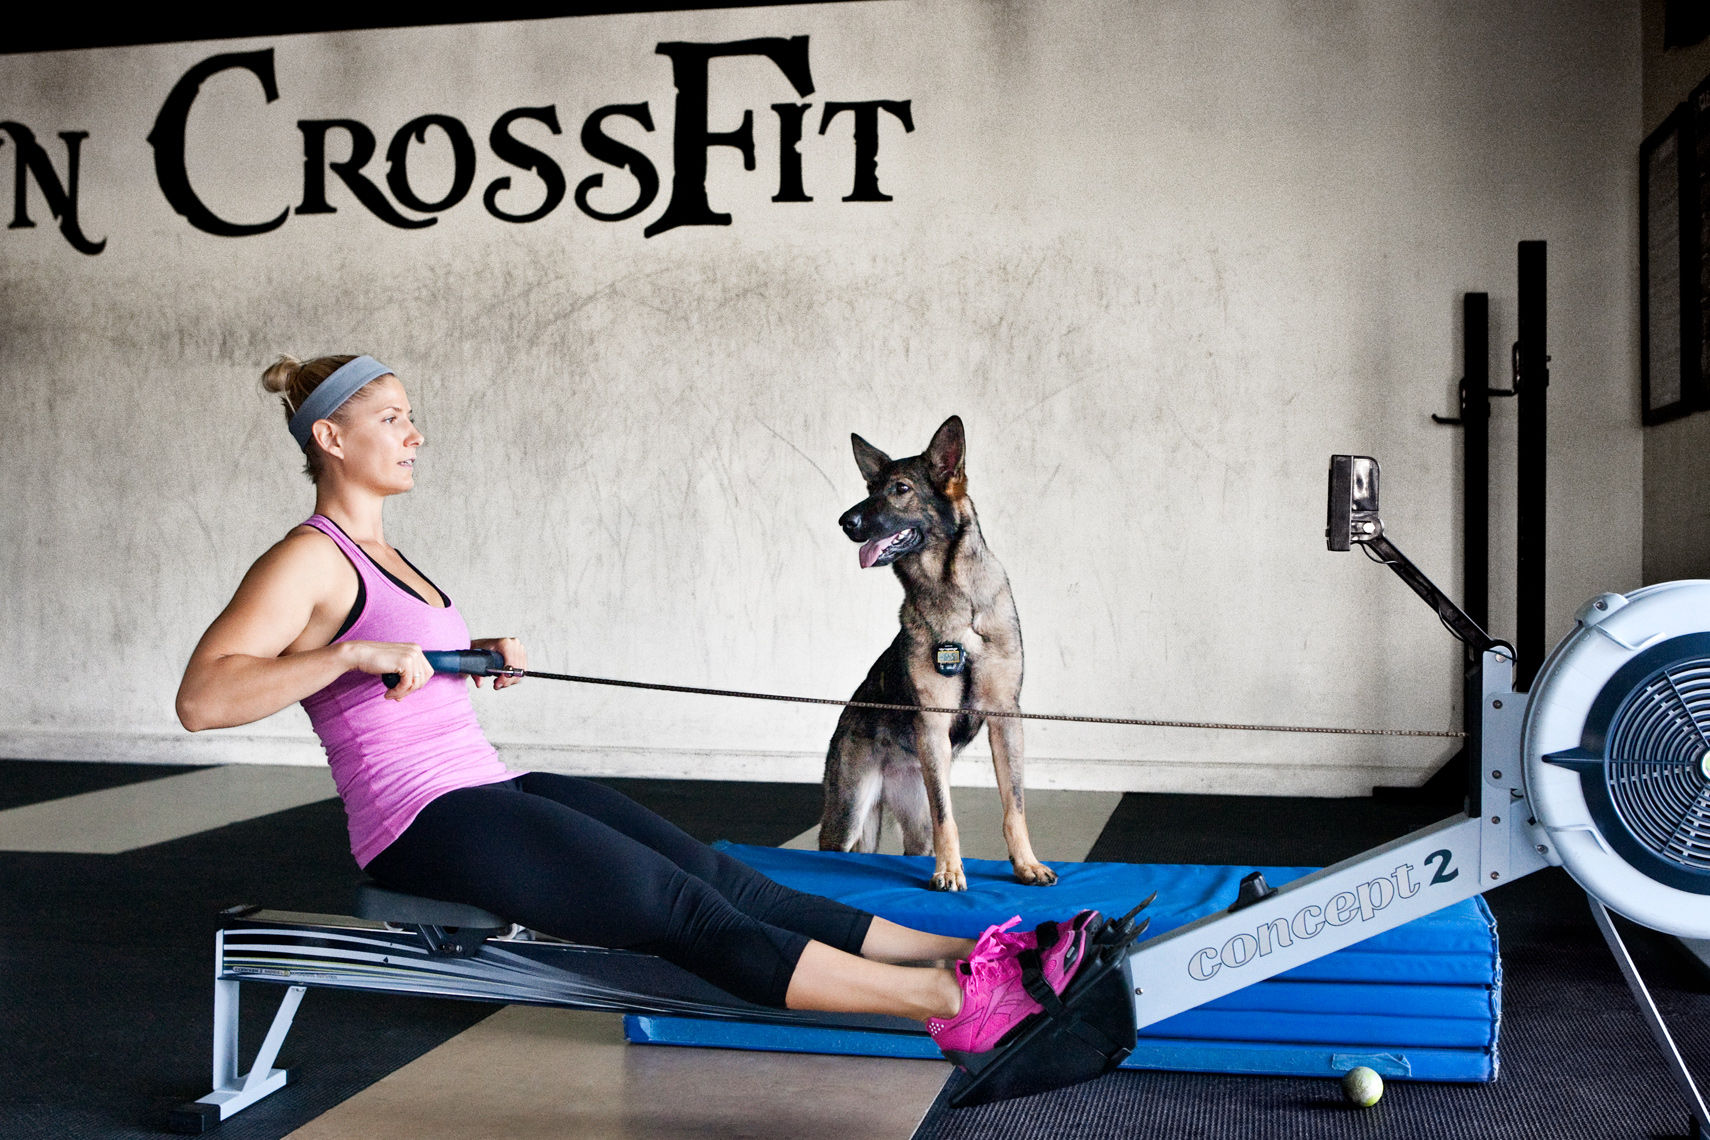 Crossfit, LA Dog Photography, Michael Brian, Los Angeles, Sports, Elizabeth Burns on a Concept 2 rowing machine with a German Shepherd at Dogtown Crossfit